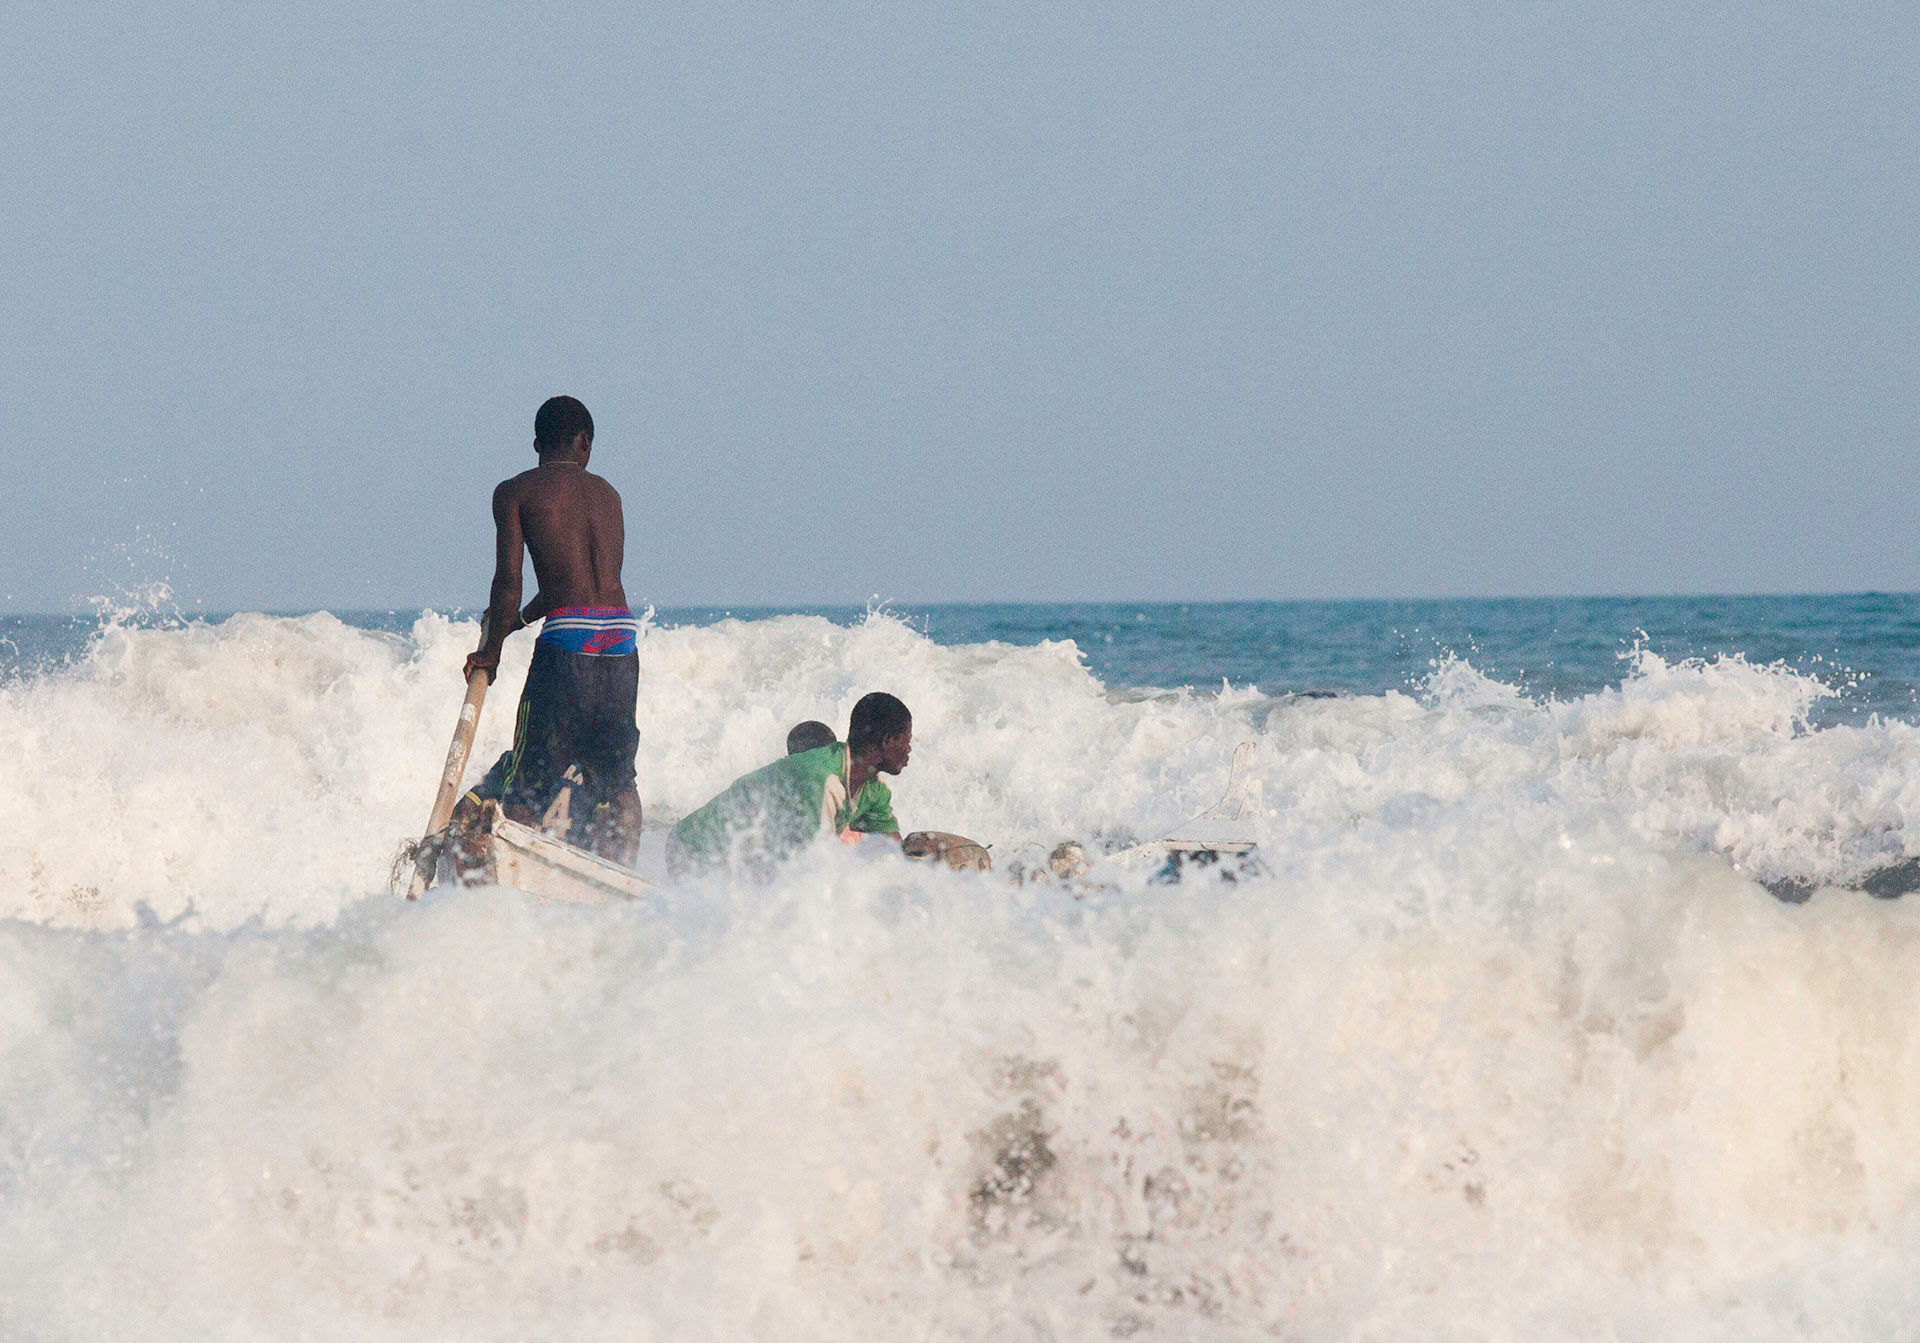 Boys Launching in Surf, Kokobrite